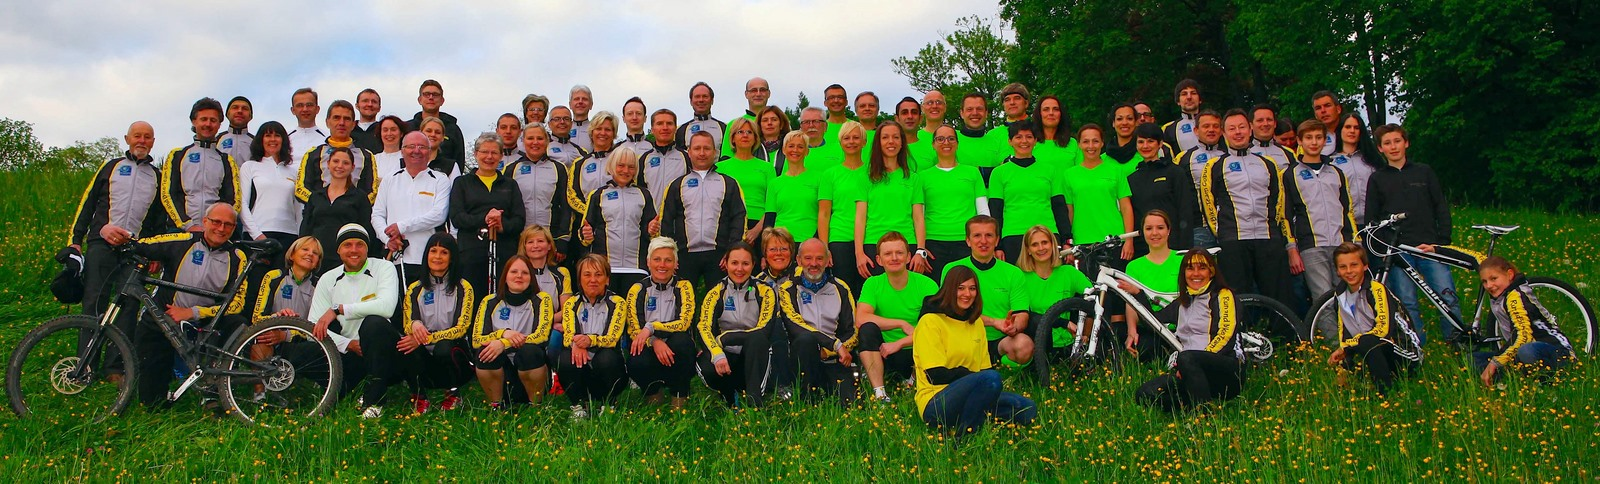 Laufgruppe Run and Bike-Team 2012